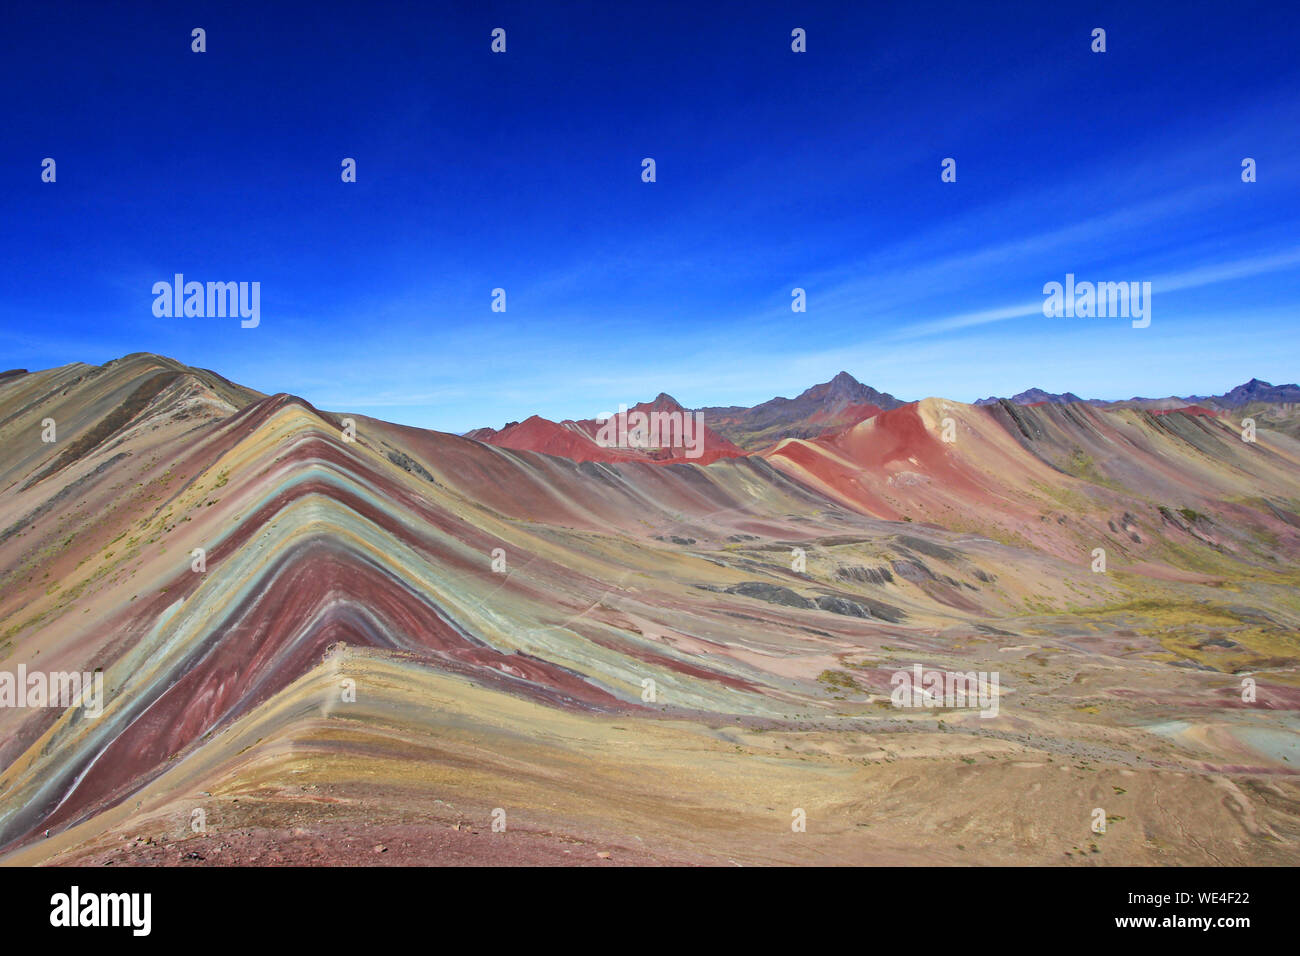 View Of Mountain Range Against Blue Sky Stock Photo